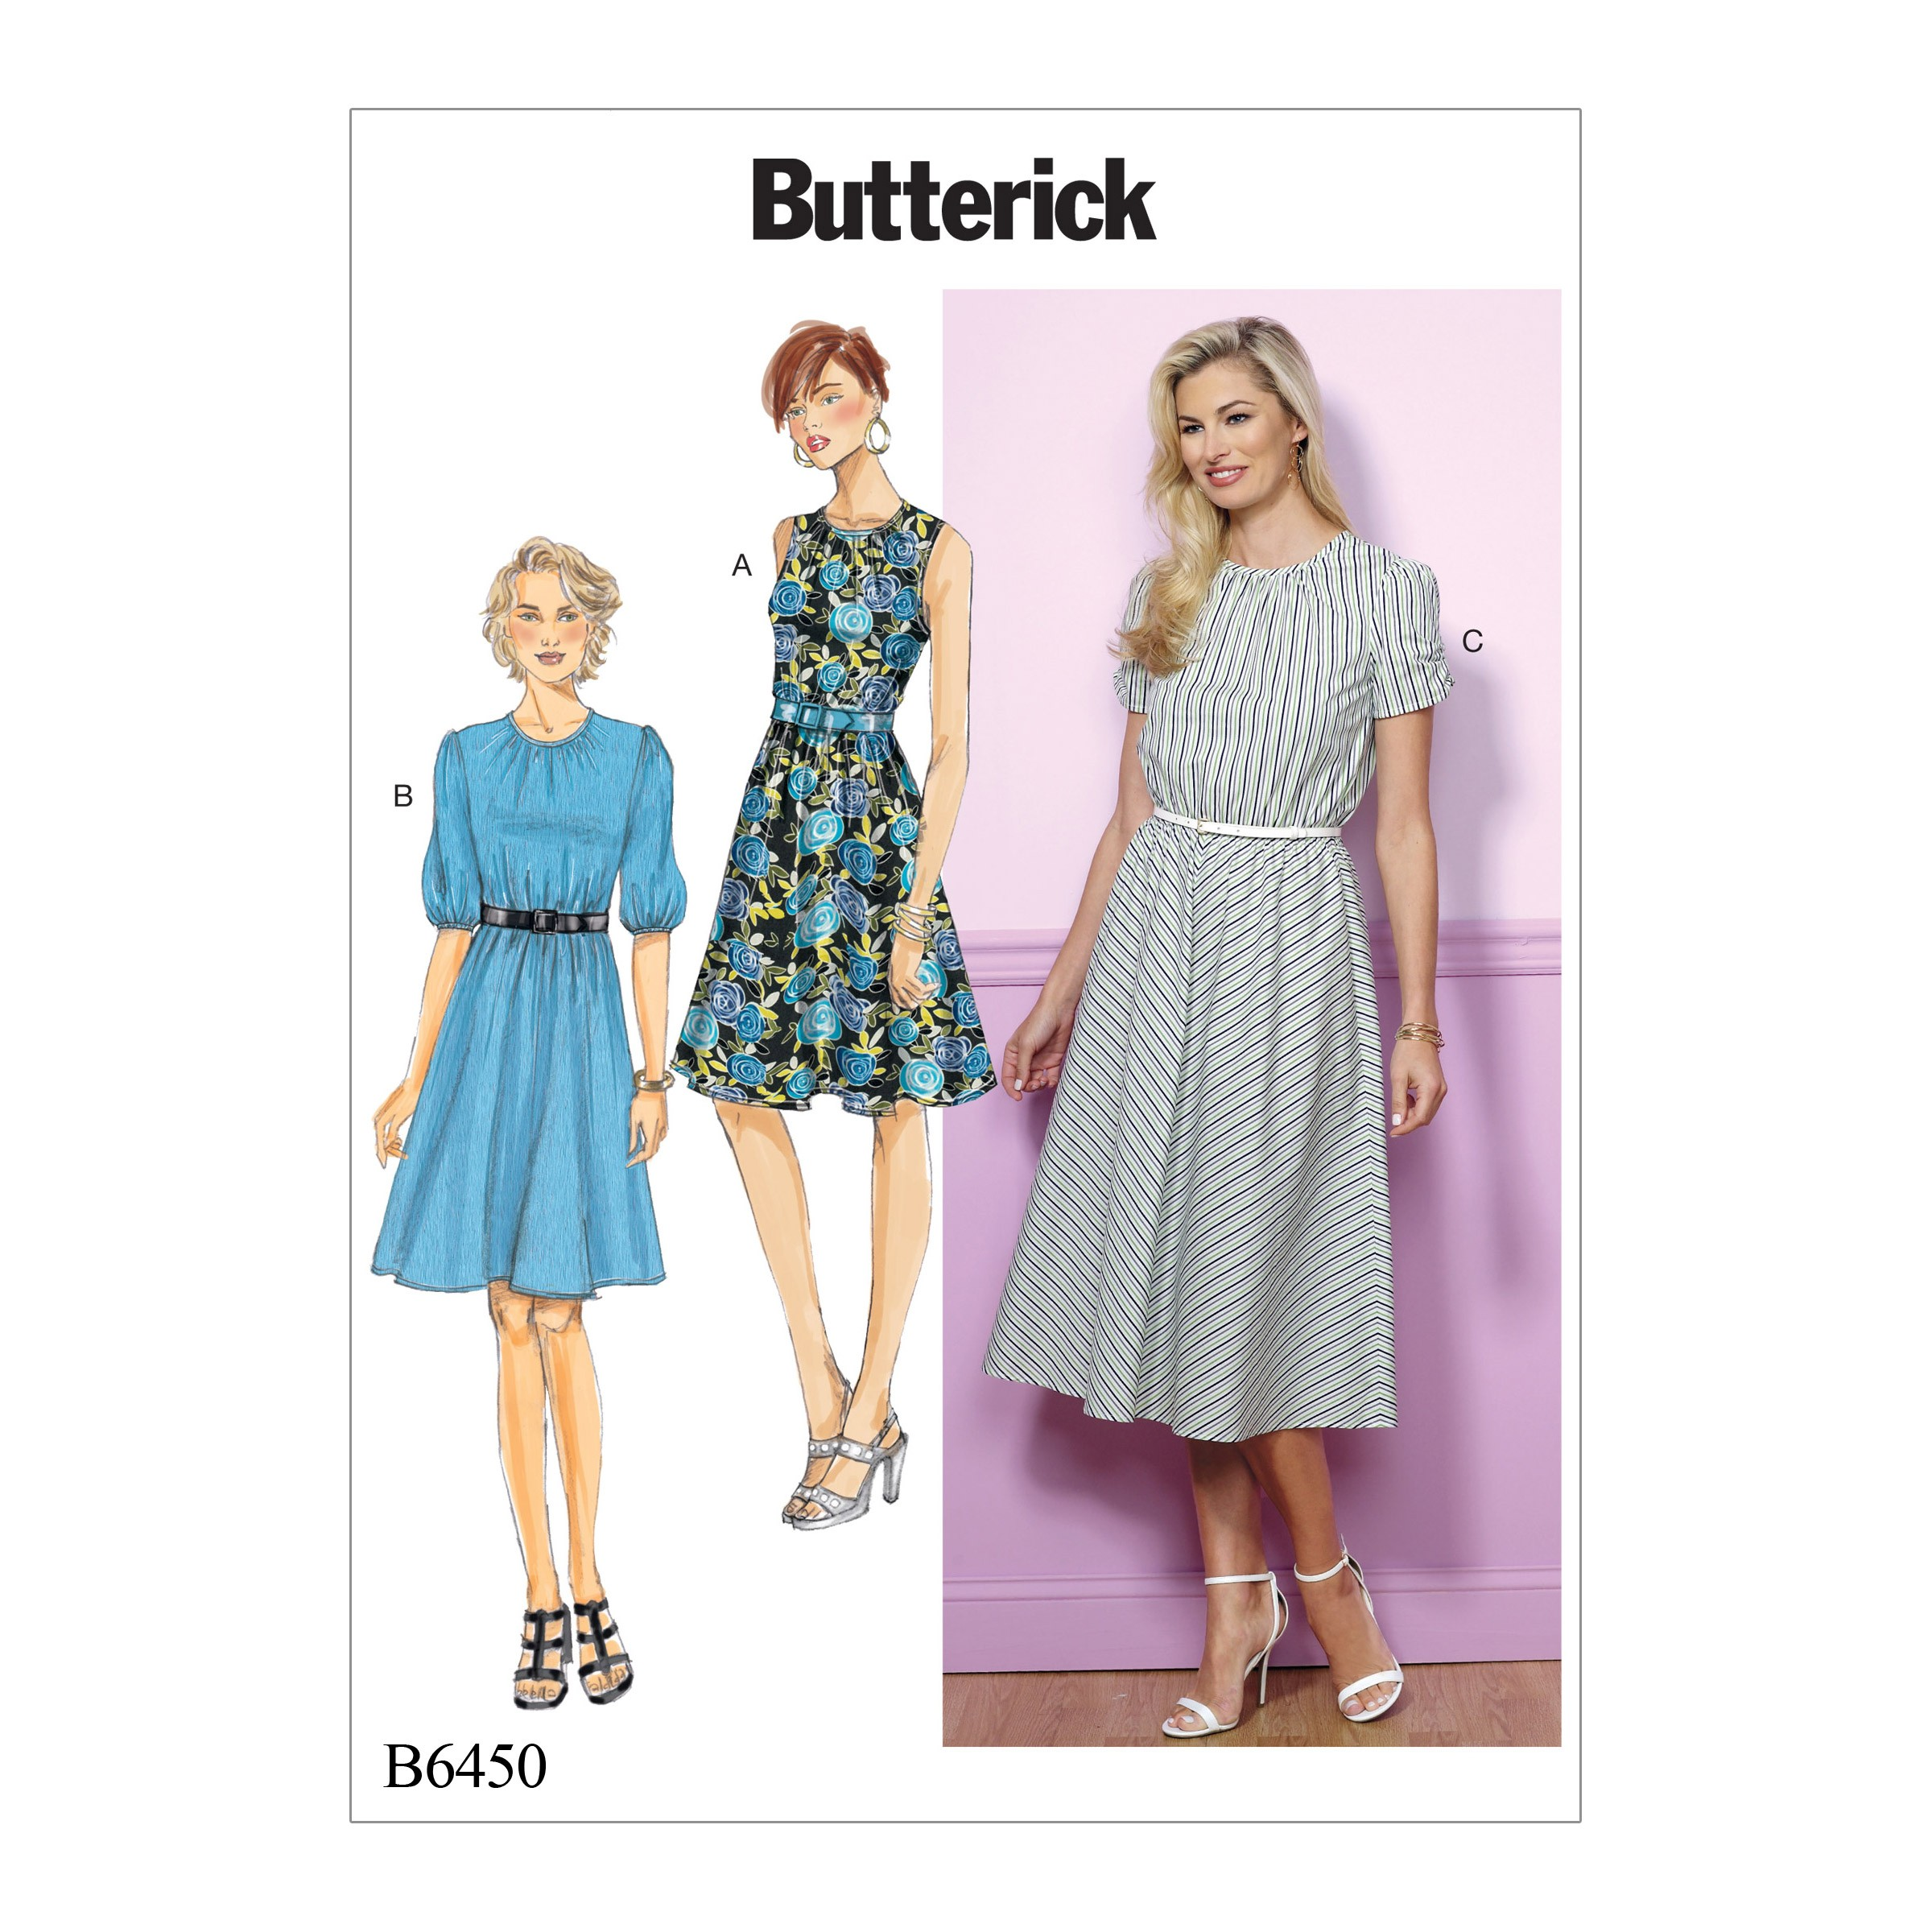 Butterick Sewing Pattern 6450 Misses' Petite Gathered Blouson Dress